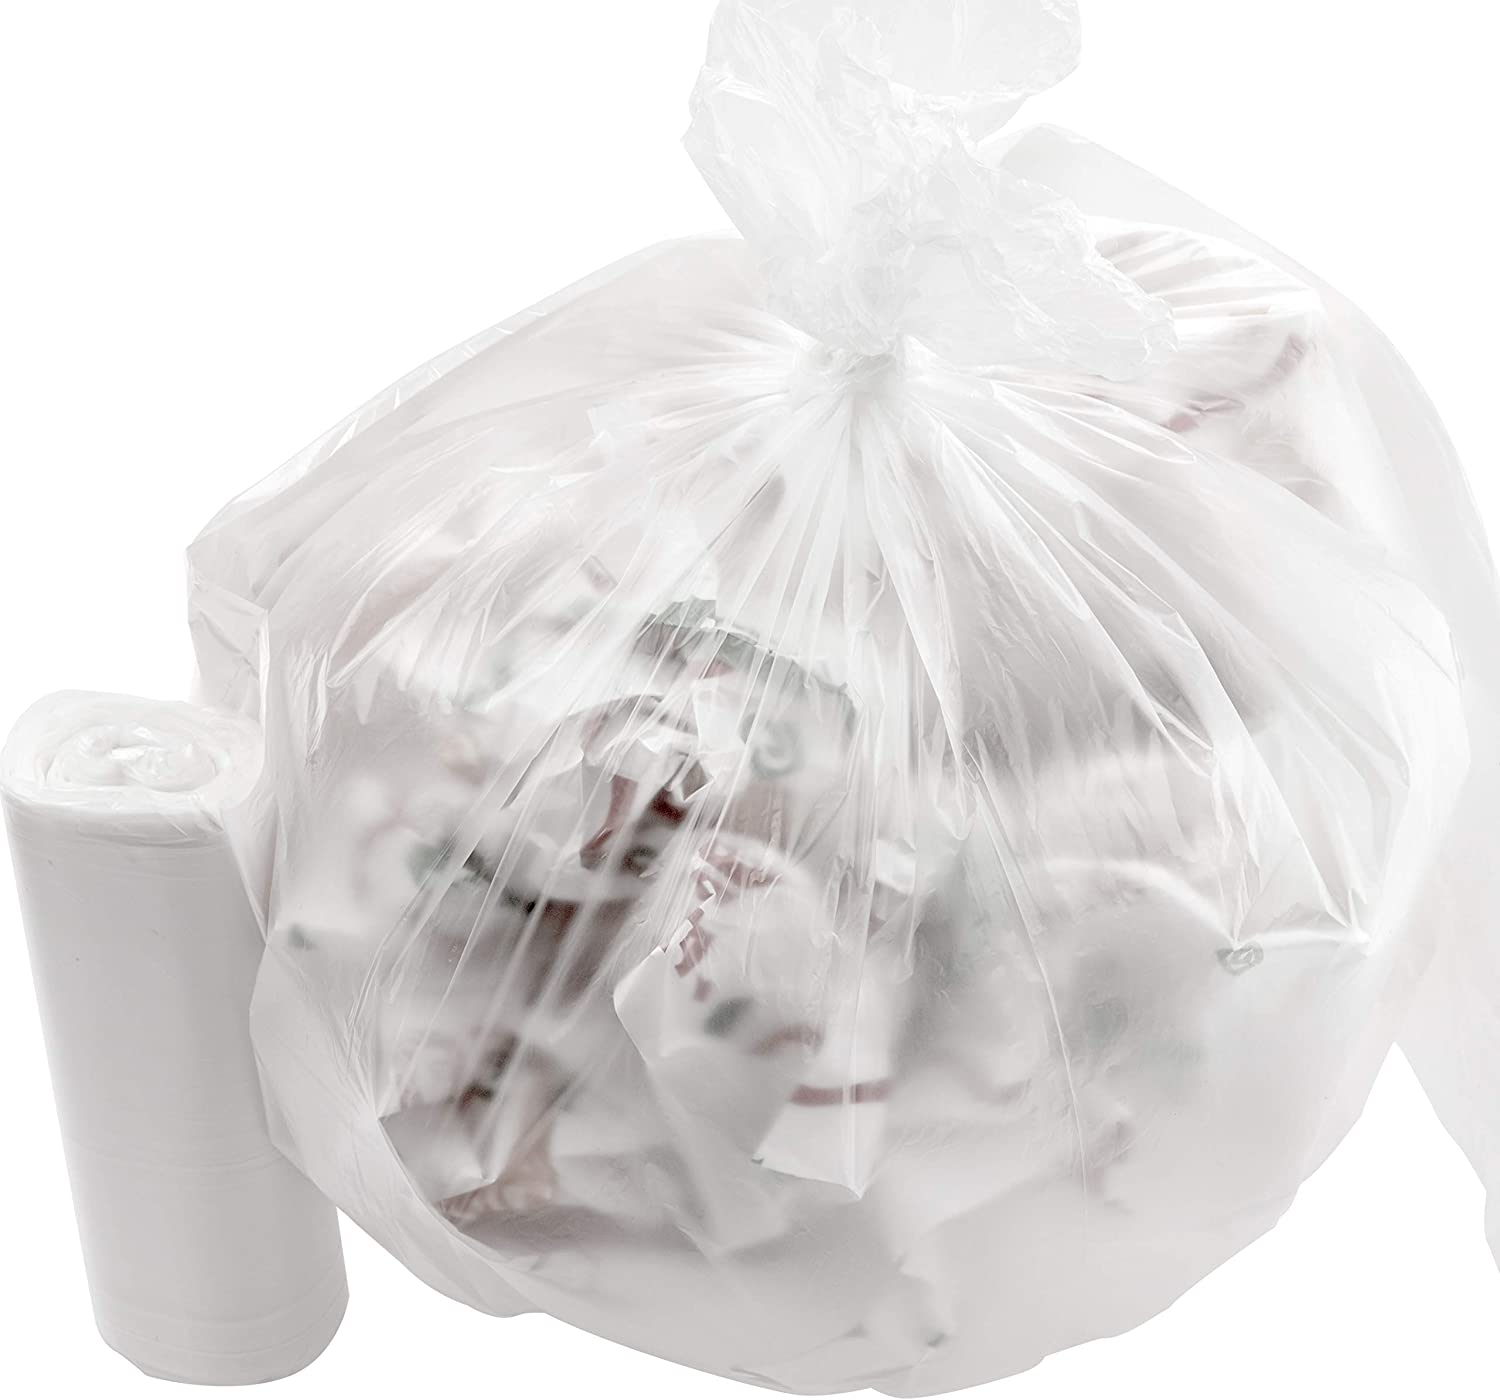 Leak-Proof Clear Selling 4 Gallon Trash online shop Can Coreles 1000Pk. Liners Small